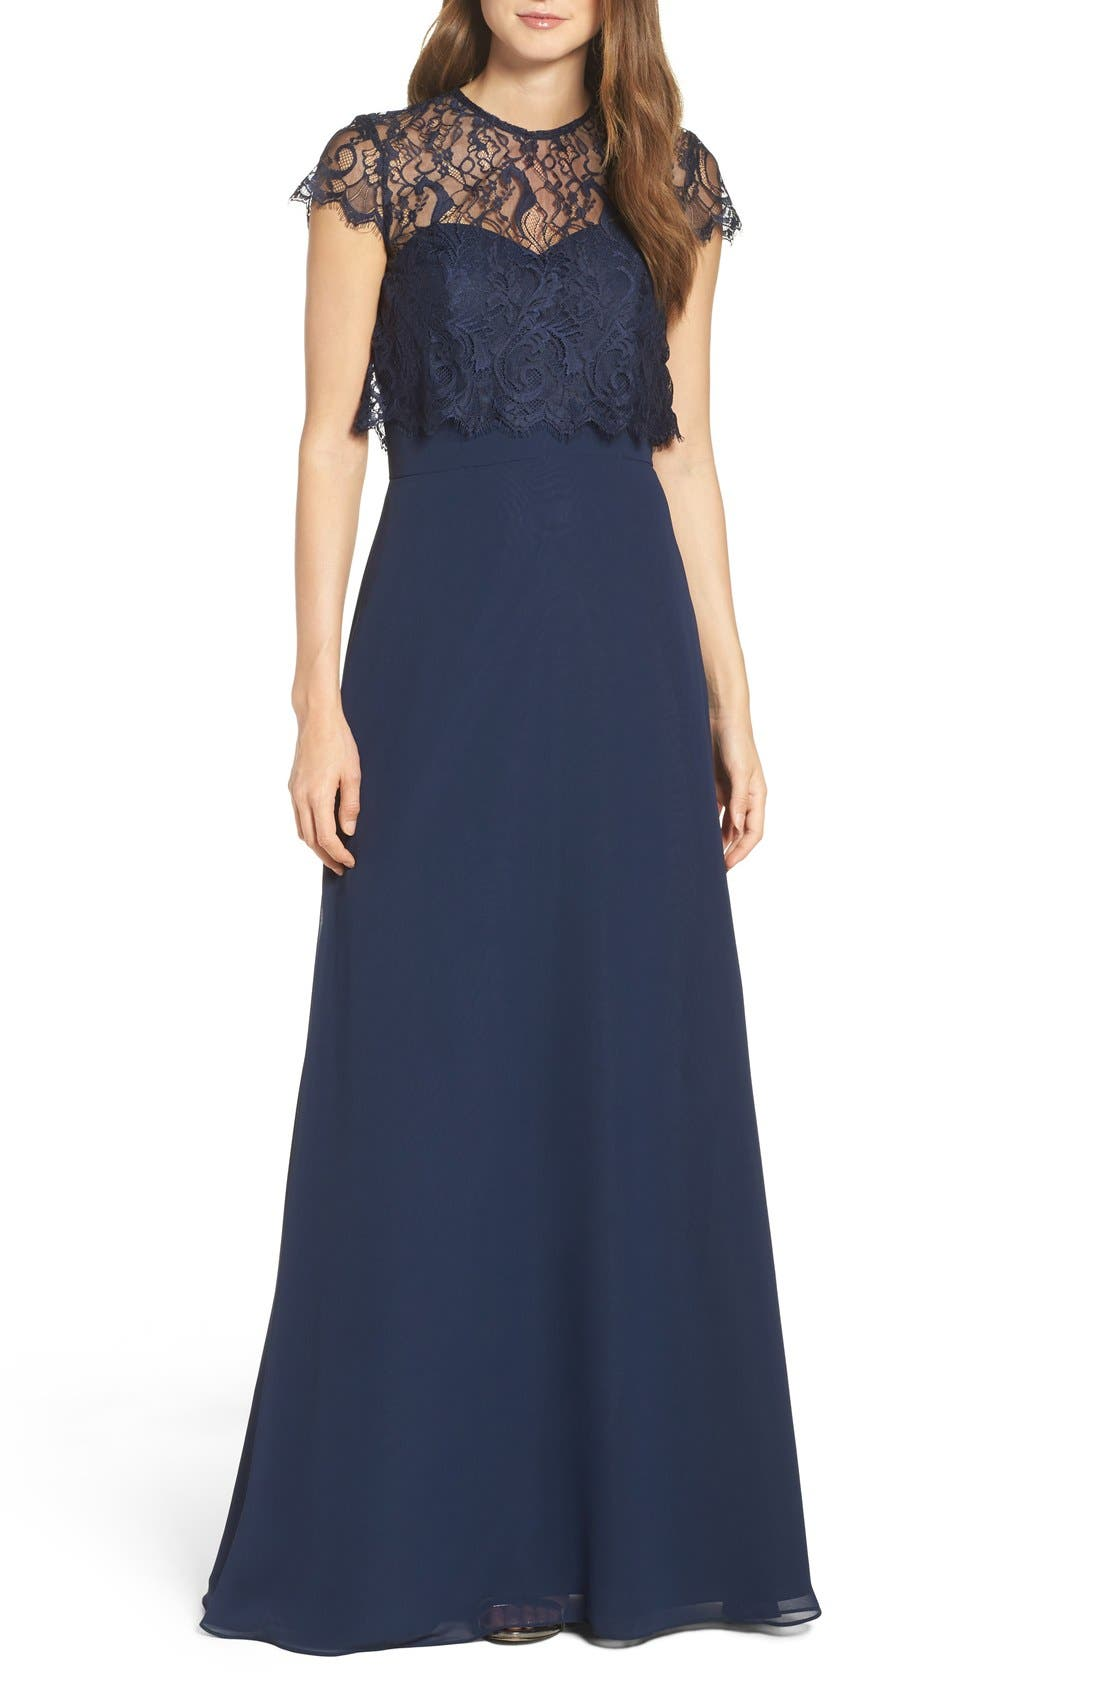 HAYLEY PAIGE OCCASIONS Strapless Chiffon A-Line Gown with